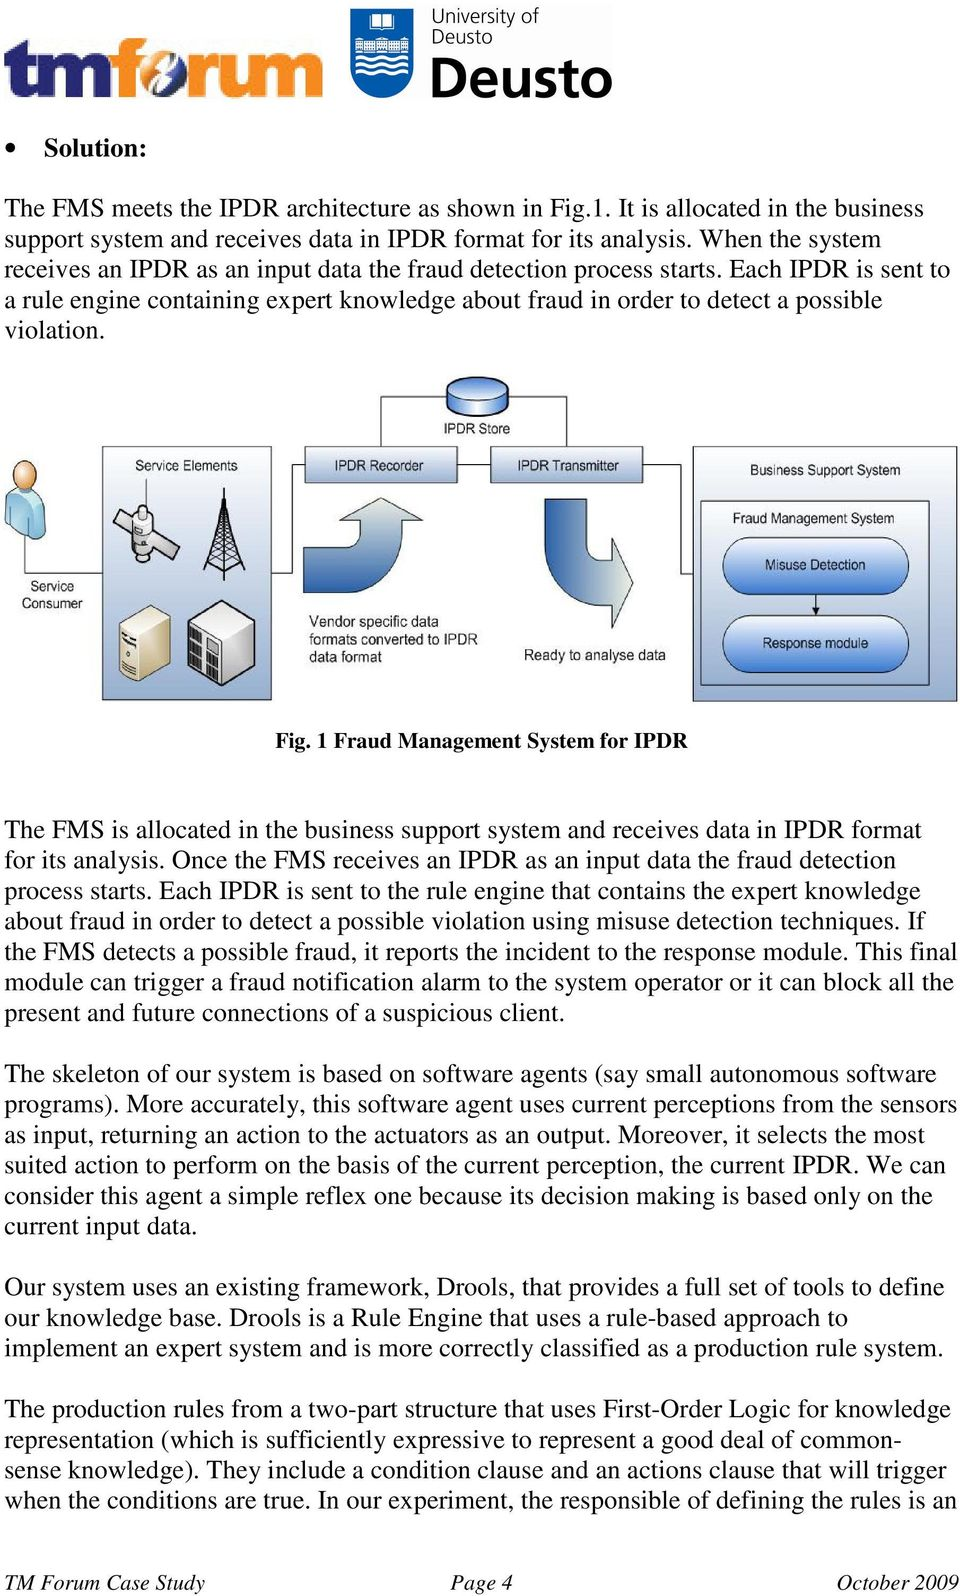 Each IPDR is sent to a rule engine containing expert knowledge about fraud in order to detect a possible violation. Fig.